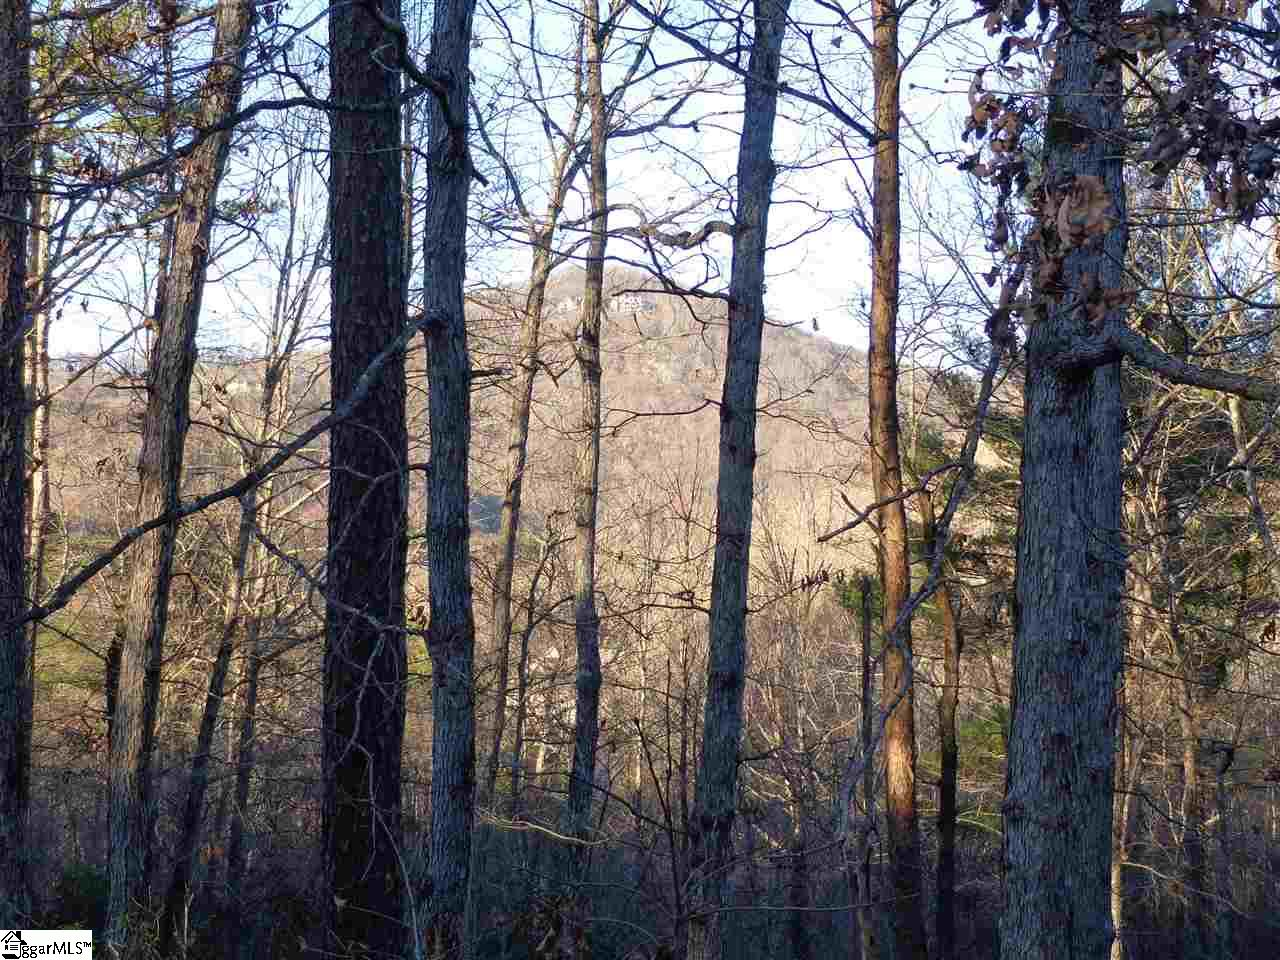 This homesite offers a great build site on Lake Hills Lane in the Lake Ridge Crossing section of The Cliffs Valley. Incredible seasonal Mountain Views. The 1.2-acre property gives way to an elevated build site surrounded by mature hardwoods offering privacy and close proximity to the Cliffs Wellness Center. A Cliffs Club membership is available to purchase with the property.